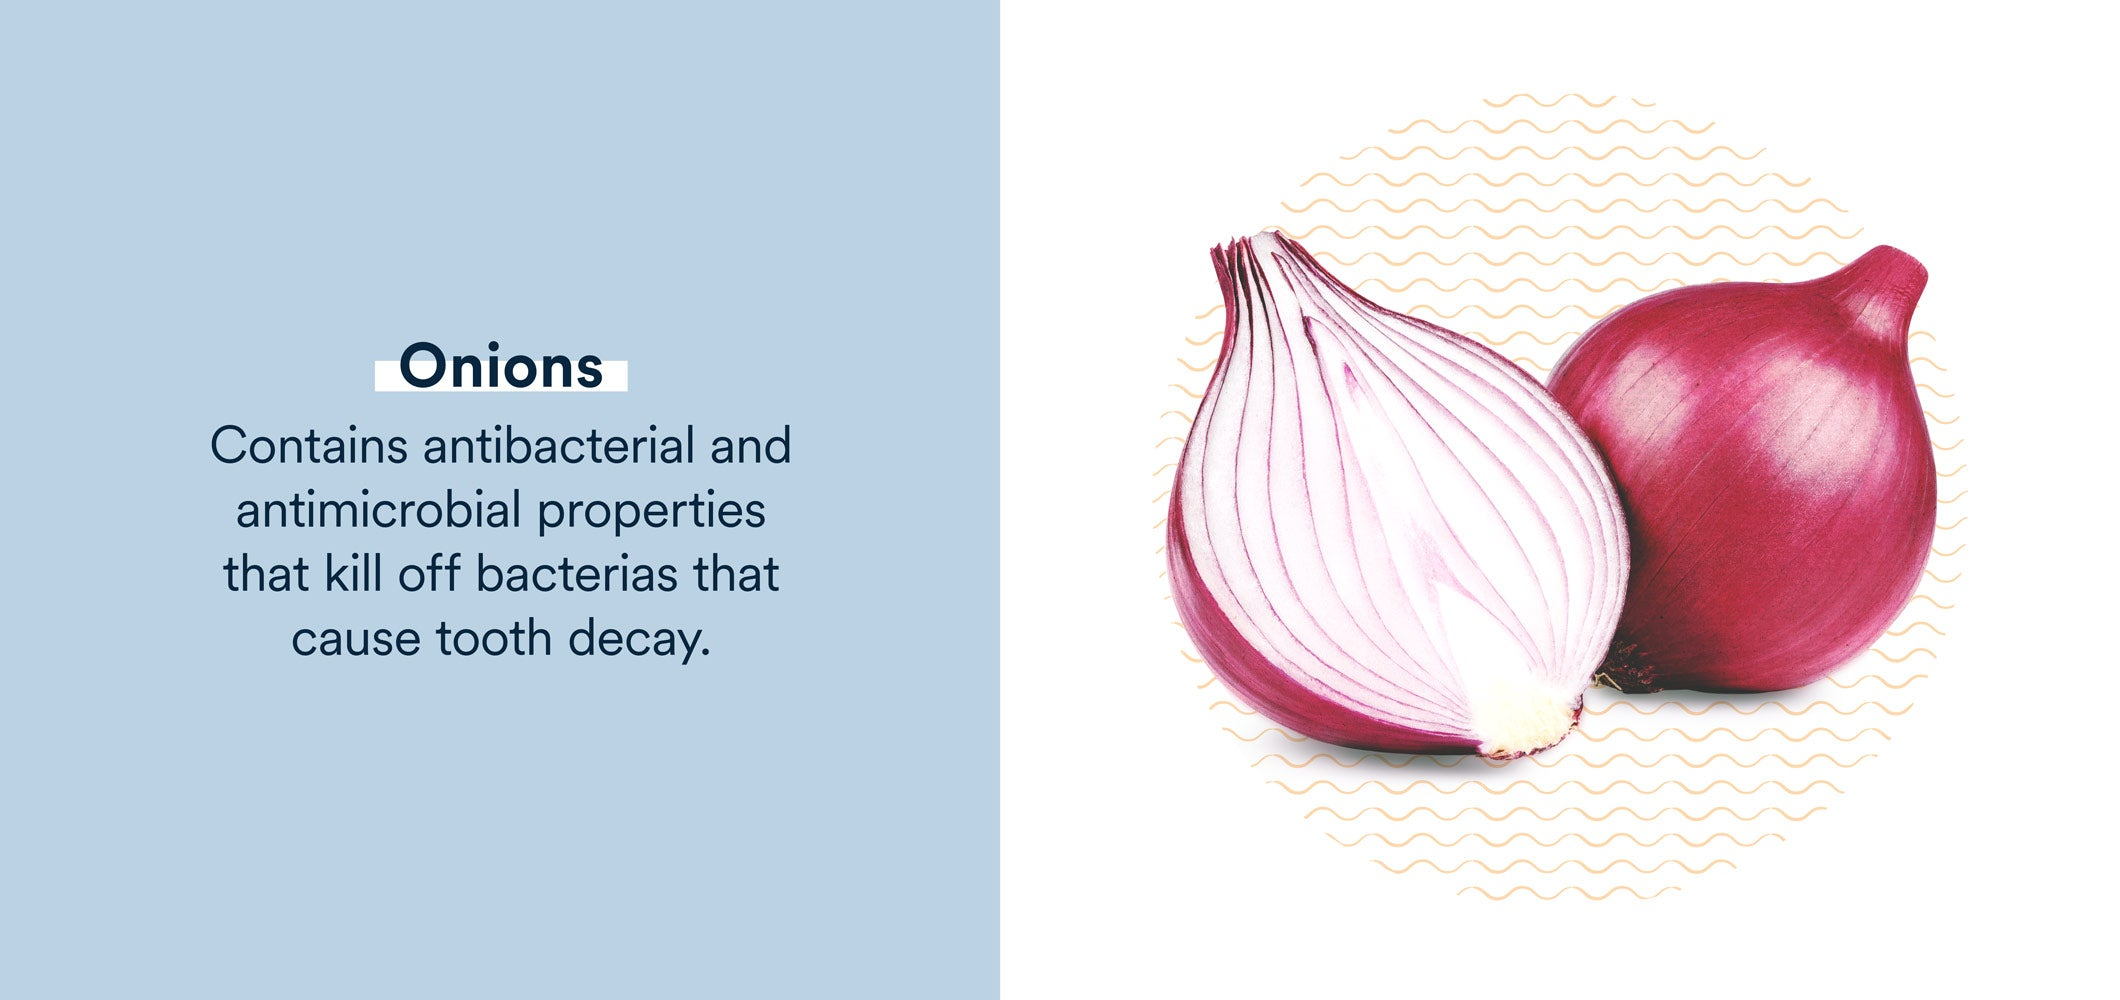 onions contain antibacterial and antimicrobial properties